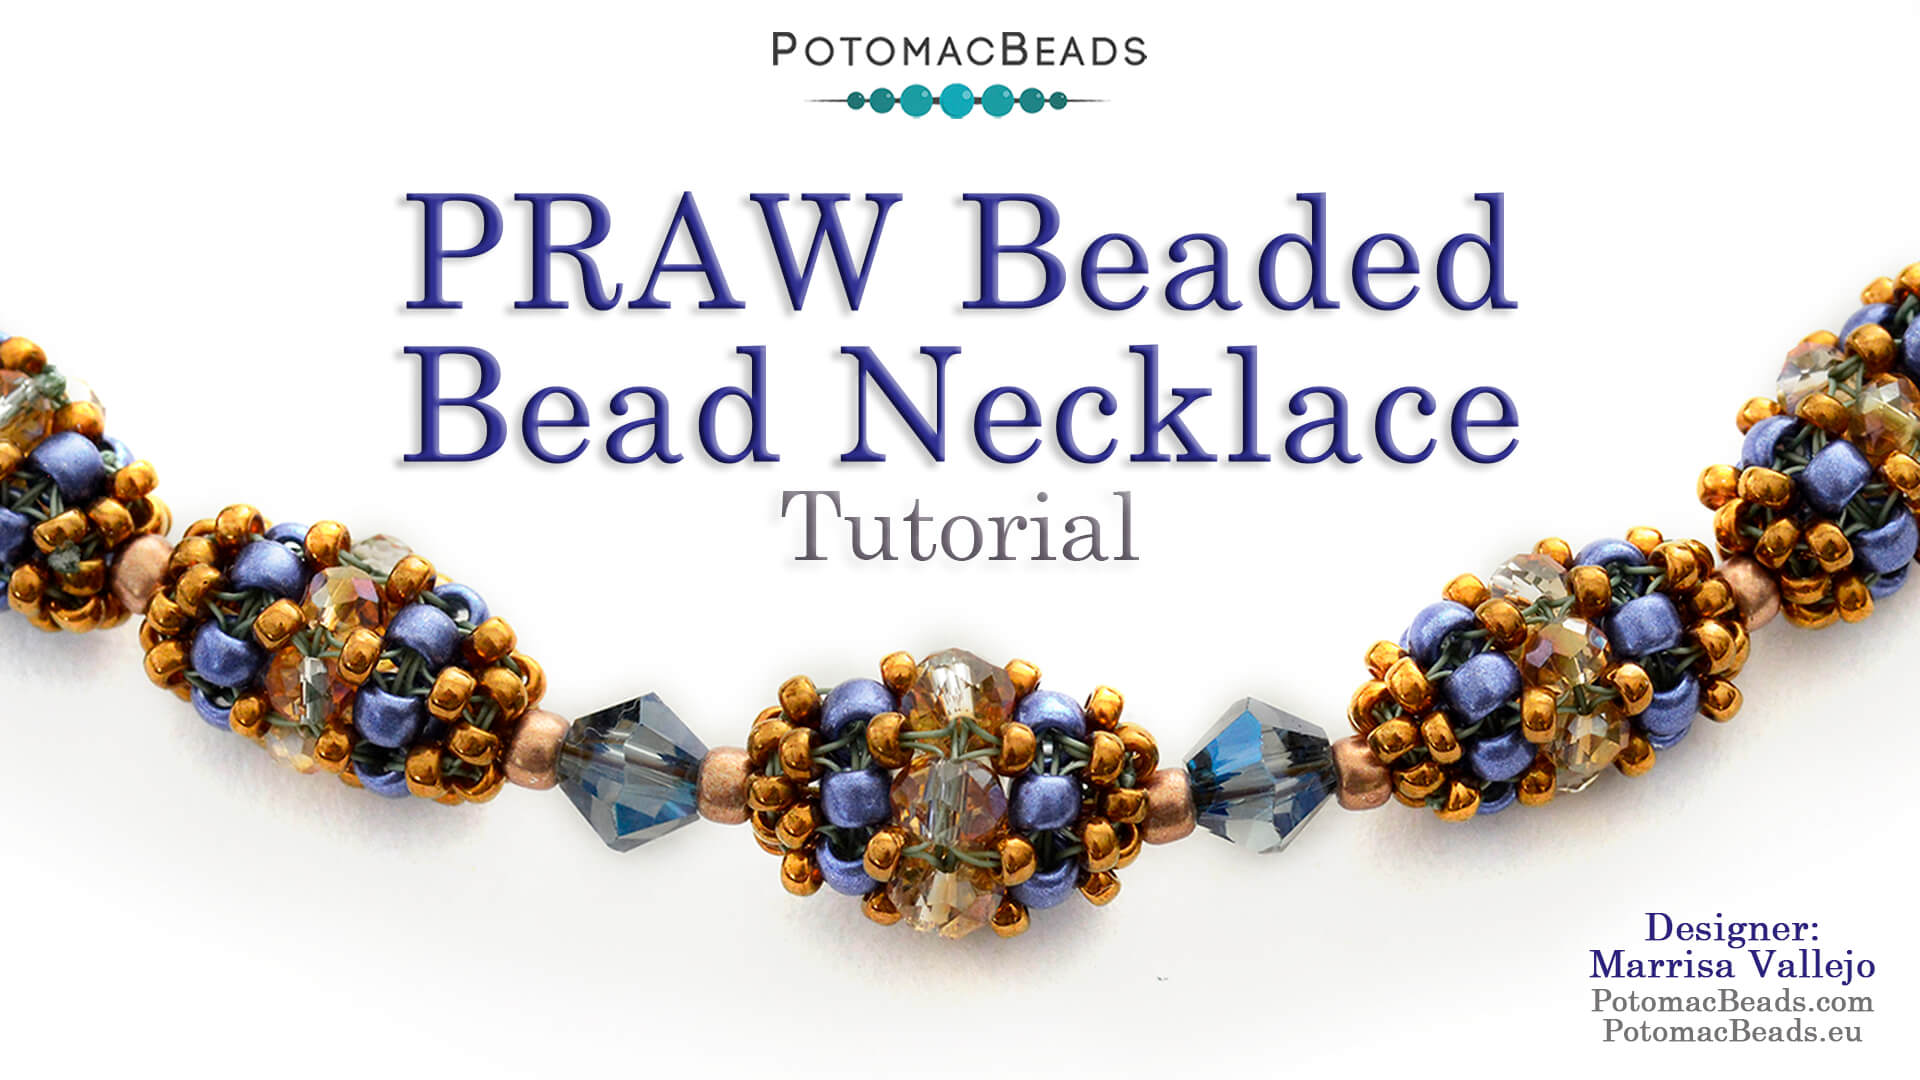 How to Bead Jewelry / Videos Sorted by Beads / Potomac Crystal Videos / PRAW Beaded Bead Necklace Tutorial